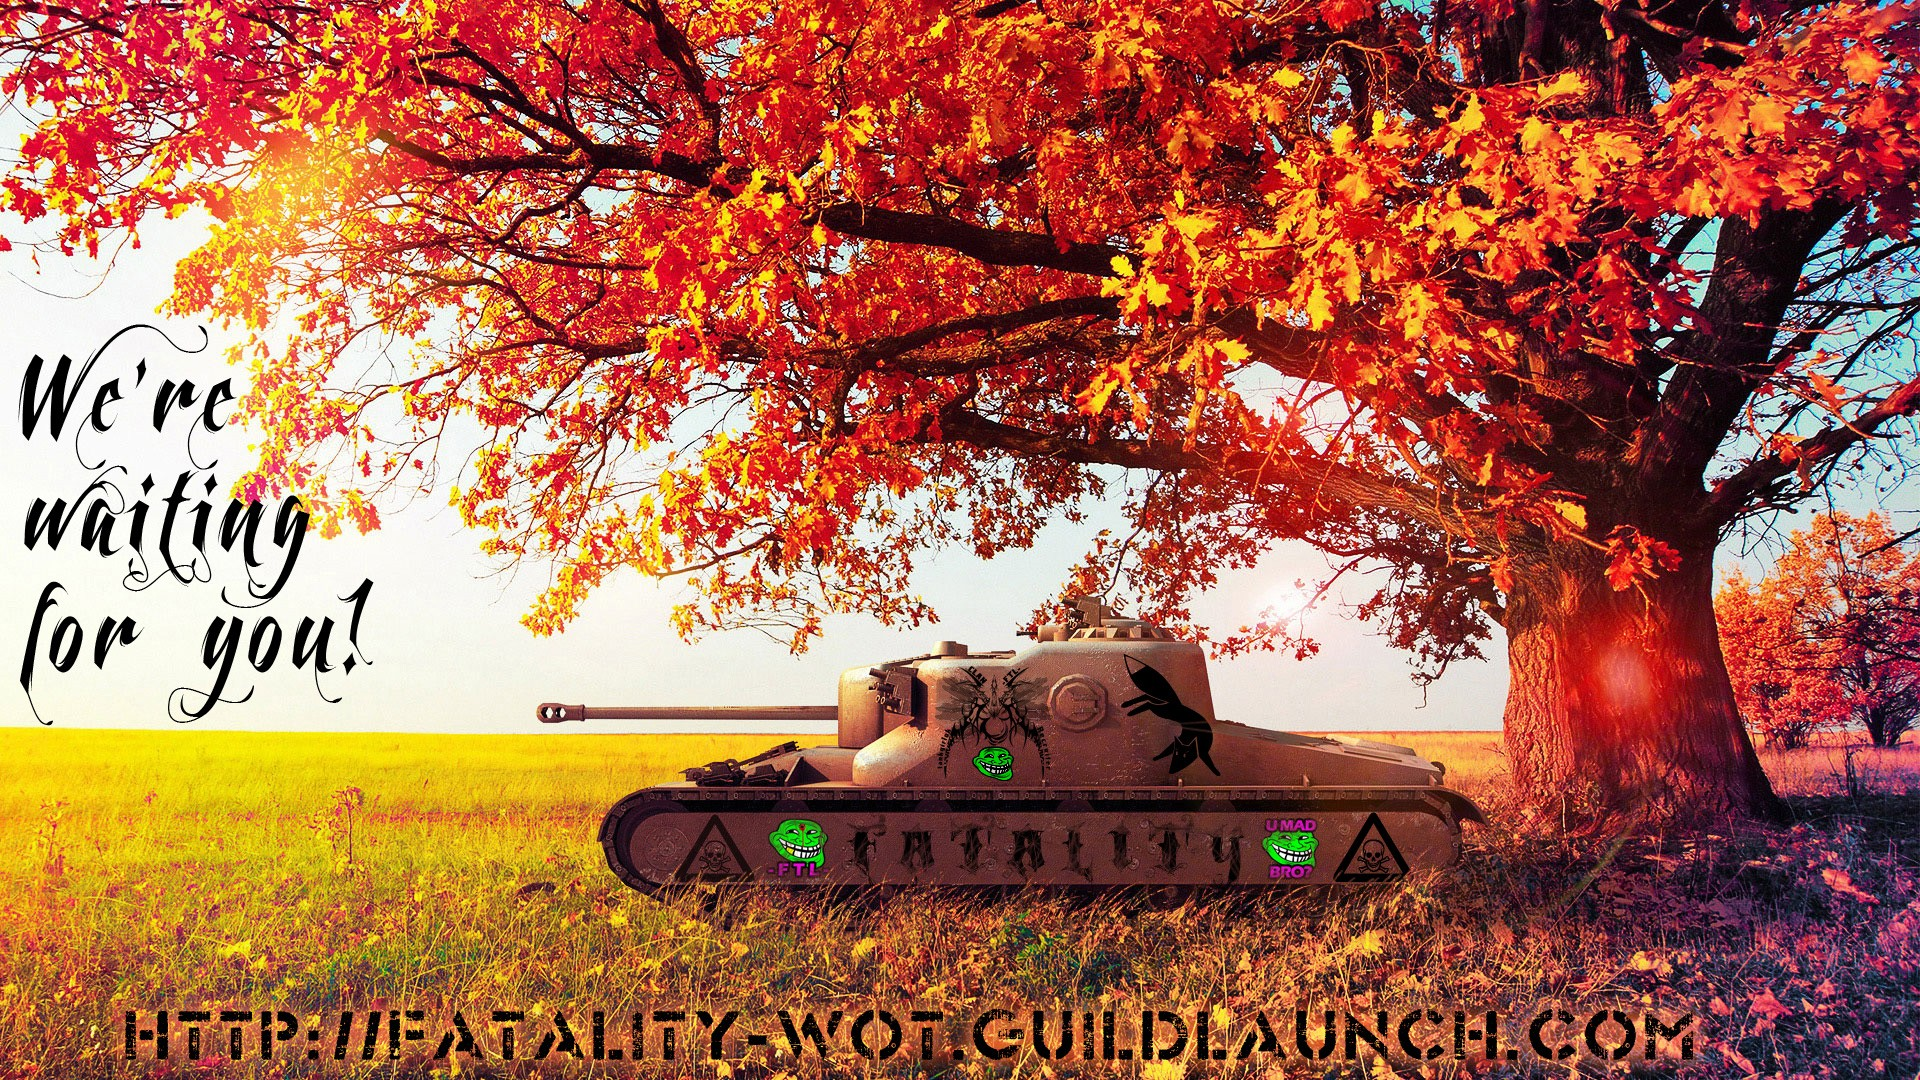 AT 15 TANK DESTROYER RECRUITMENT -FTL- FTLTY FATALITY FATAL1TY CLAN WALLPAPER WORLD OF TANKS